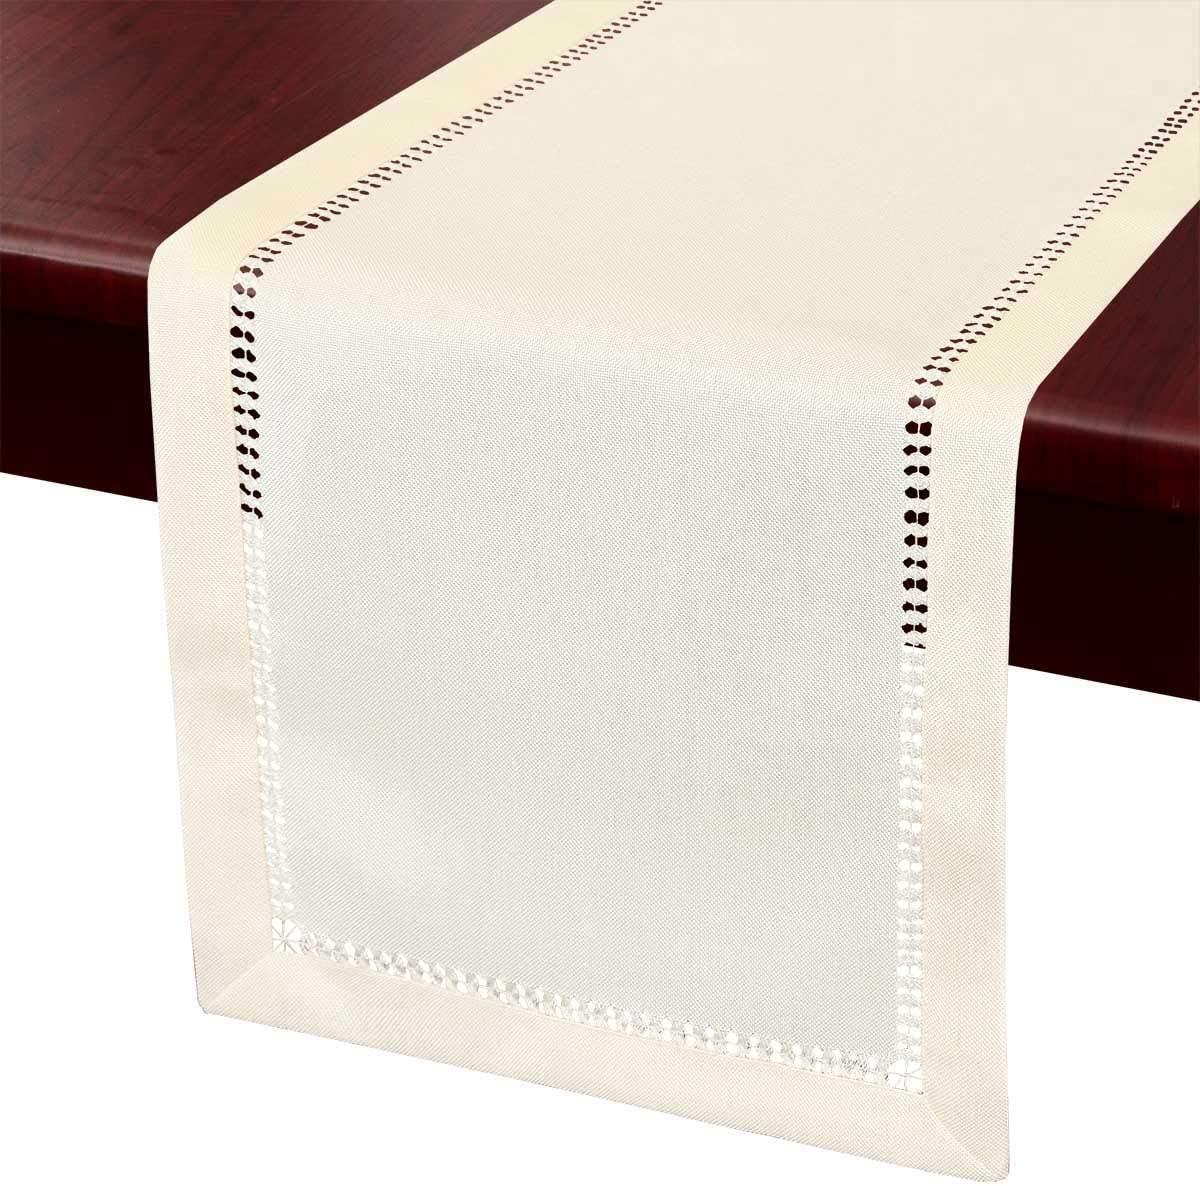 Grelucgo Large Handcrafted Double-Hemstitched Dining Table Runner